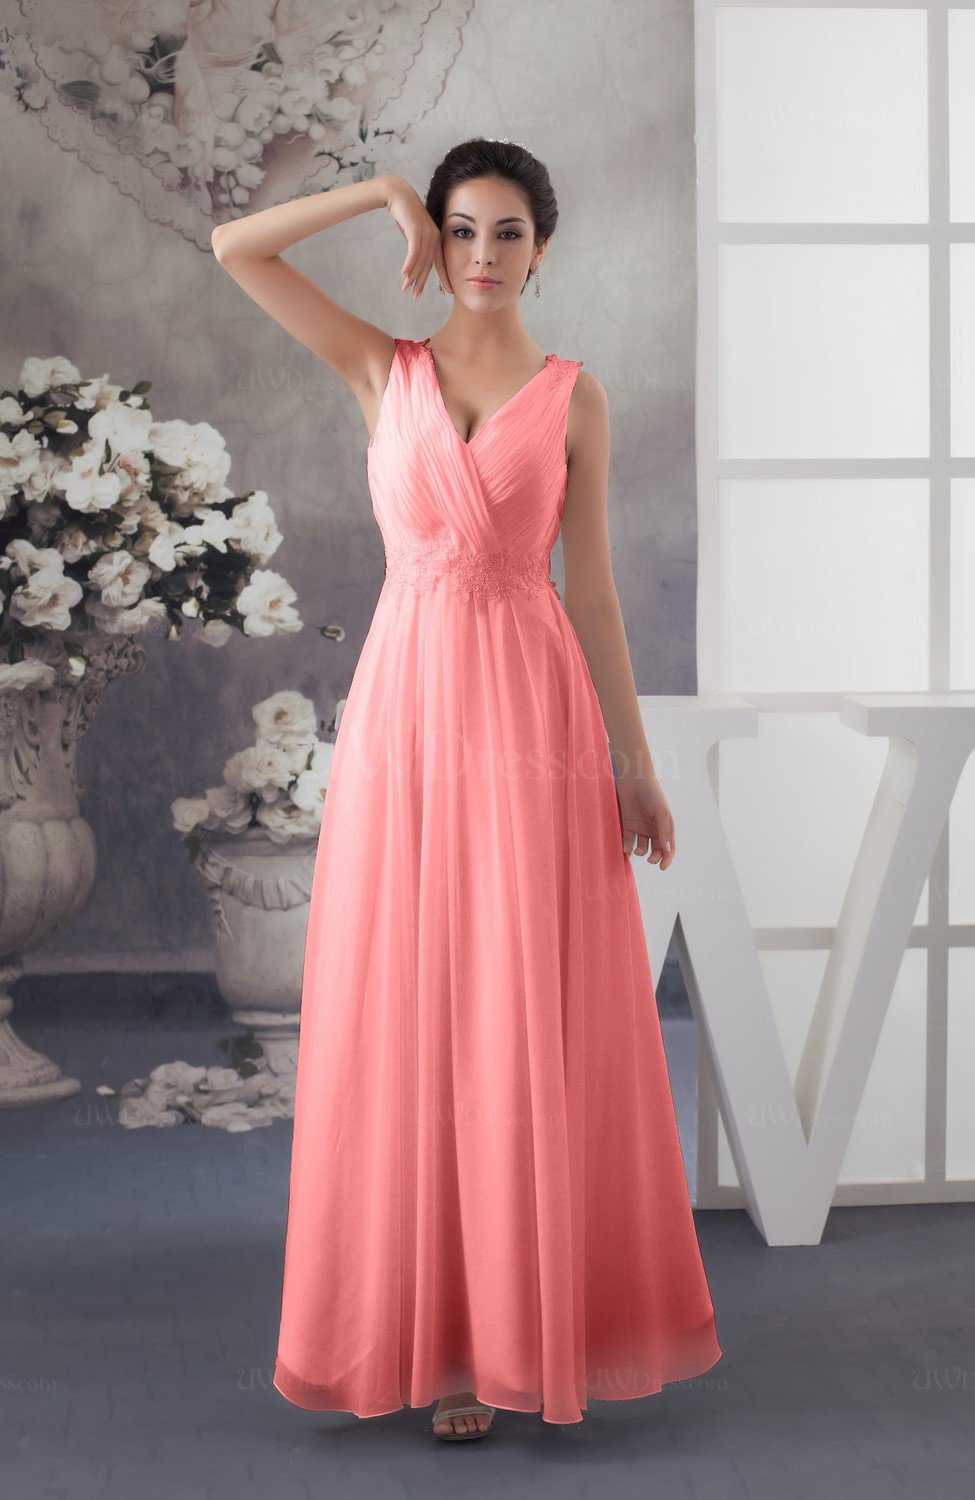 Shell Pink Chiffon Bridesmaid Dress Affordable Sexy Western Allure ...